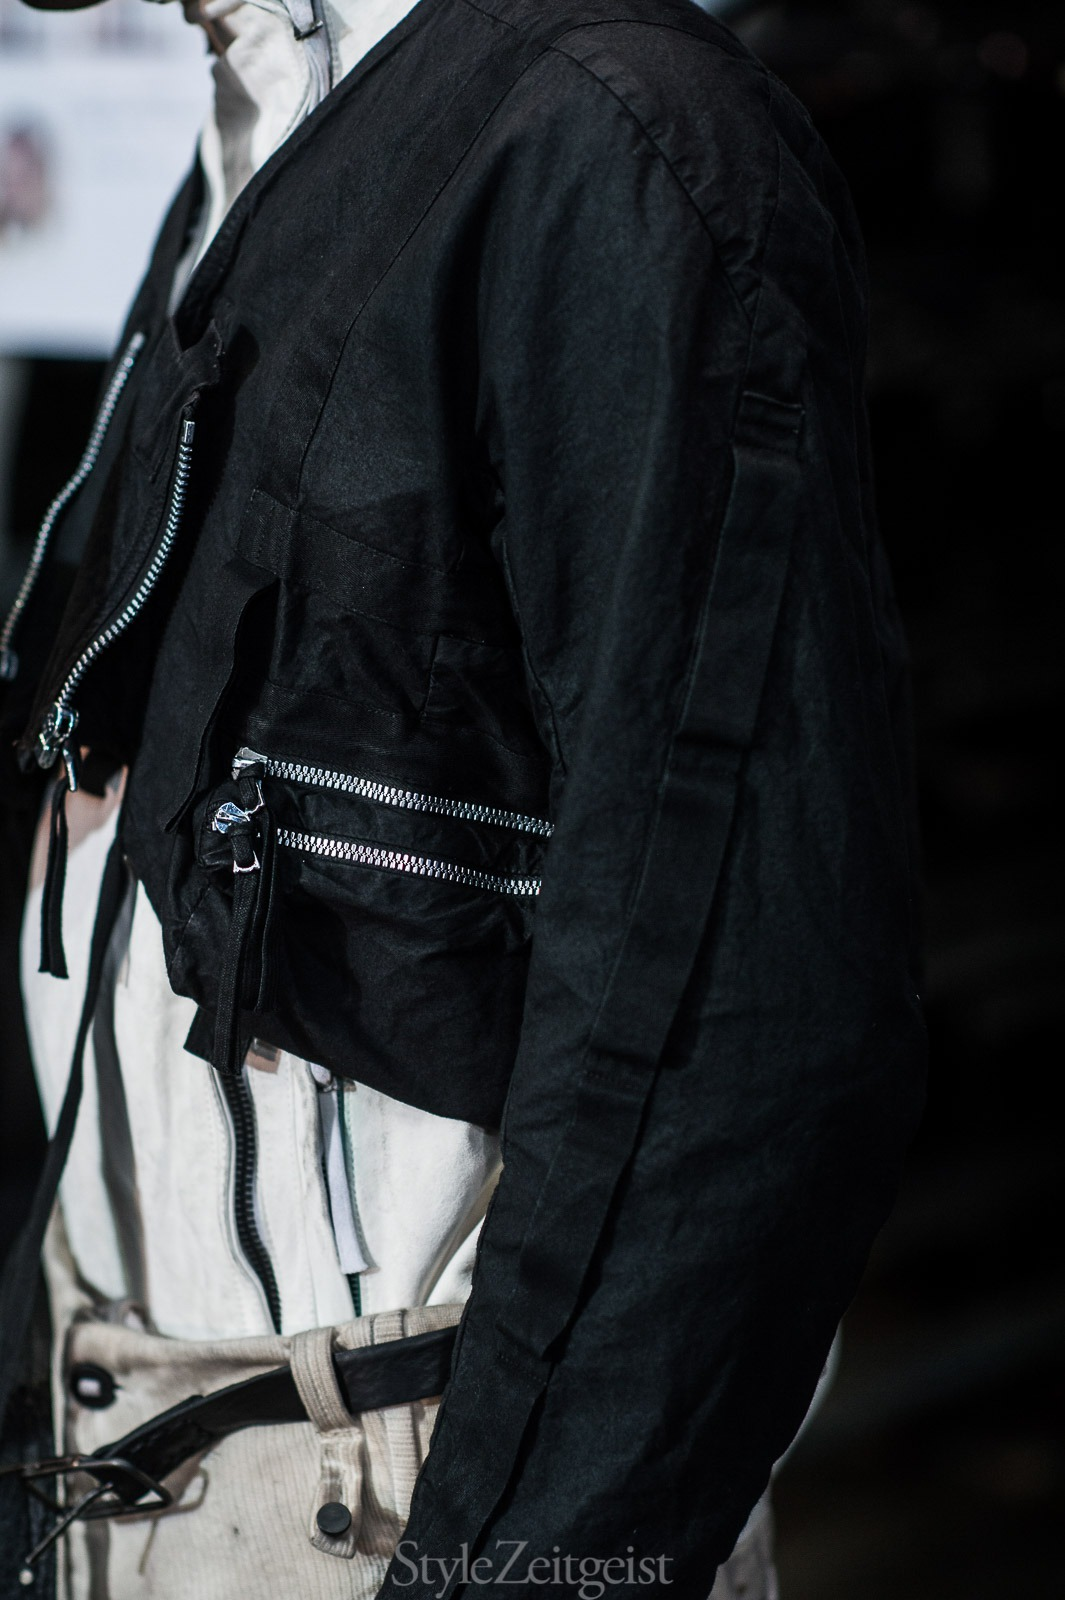 Boris Bidjan Saberi F/W17 Men's - Paris Backstage - fashion - StyleZeitgeist, Paris, MENSWEAR, FW17, Fashion, Fall Winter, Boris Bidjan Saberi, BBS, Backstage, 2017